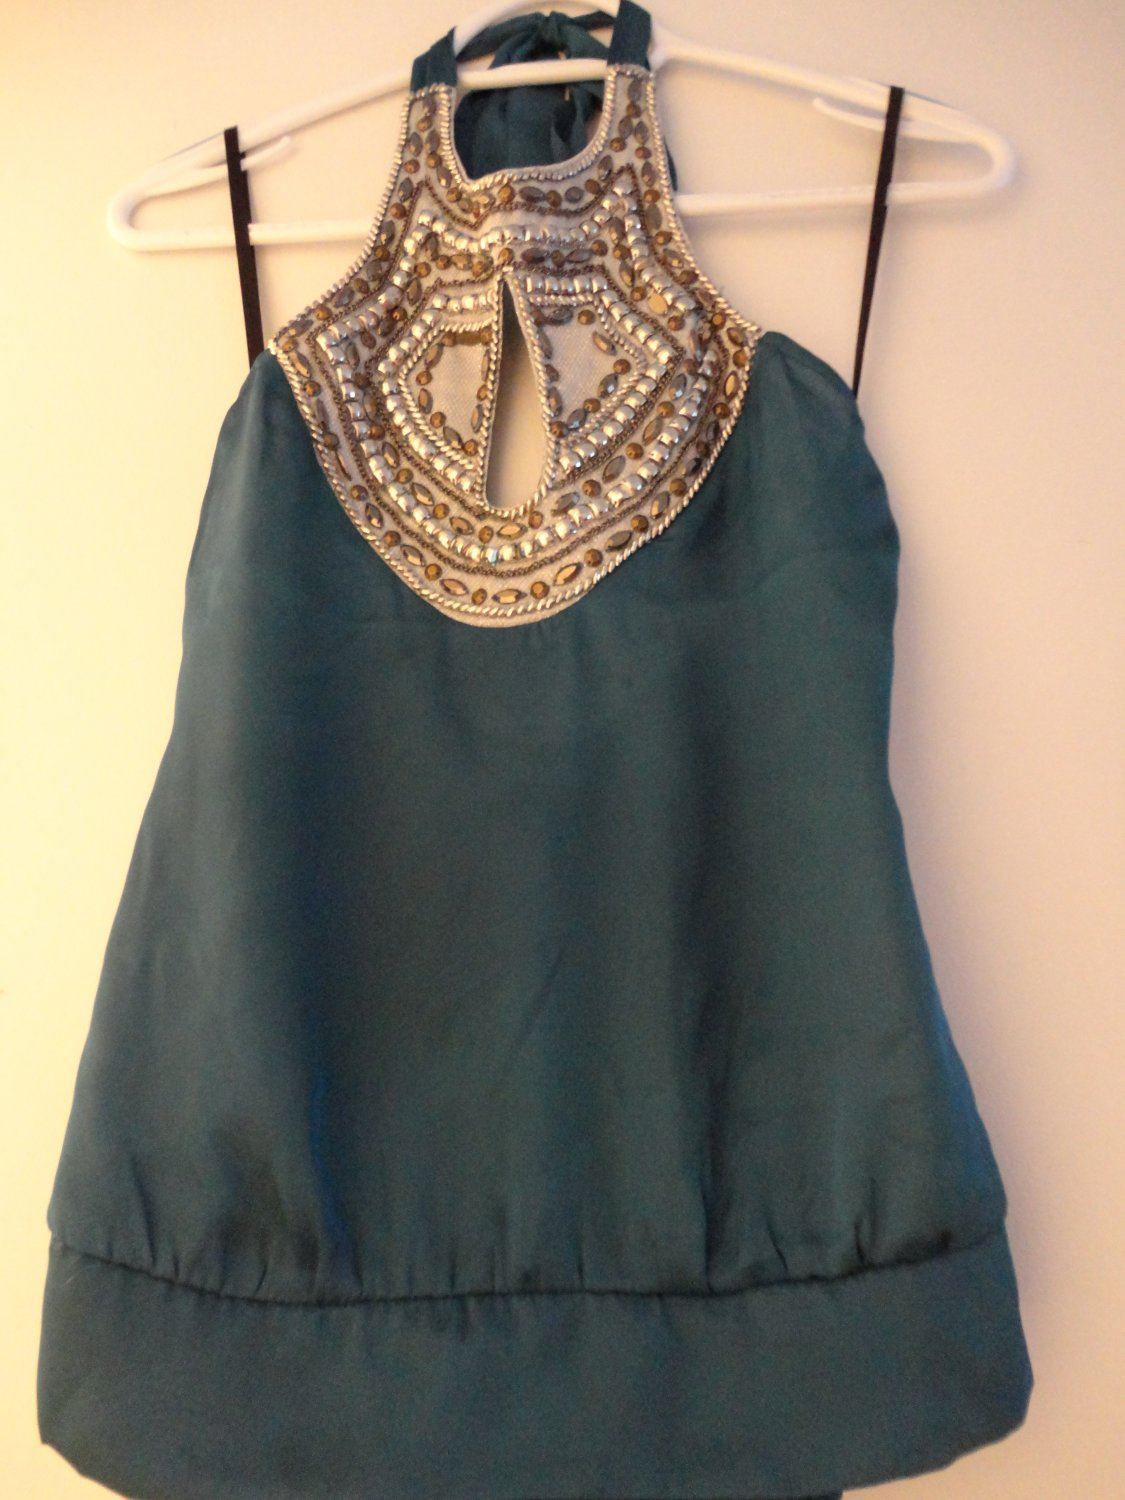 Mixed Embellished Halter Top